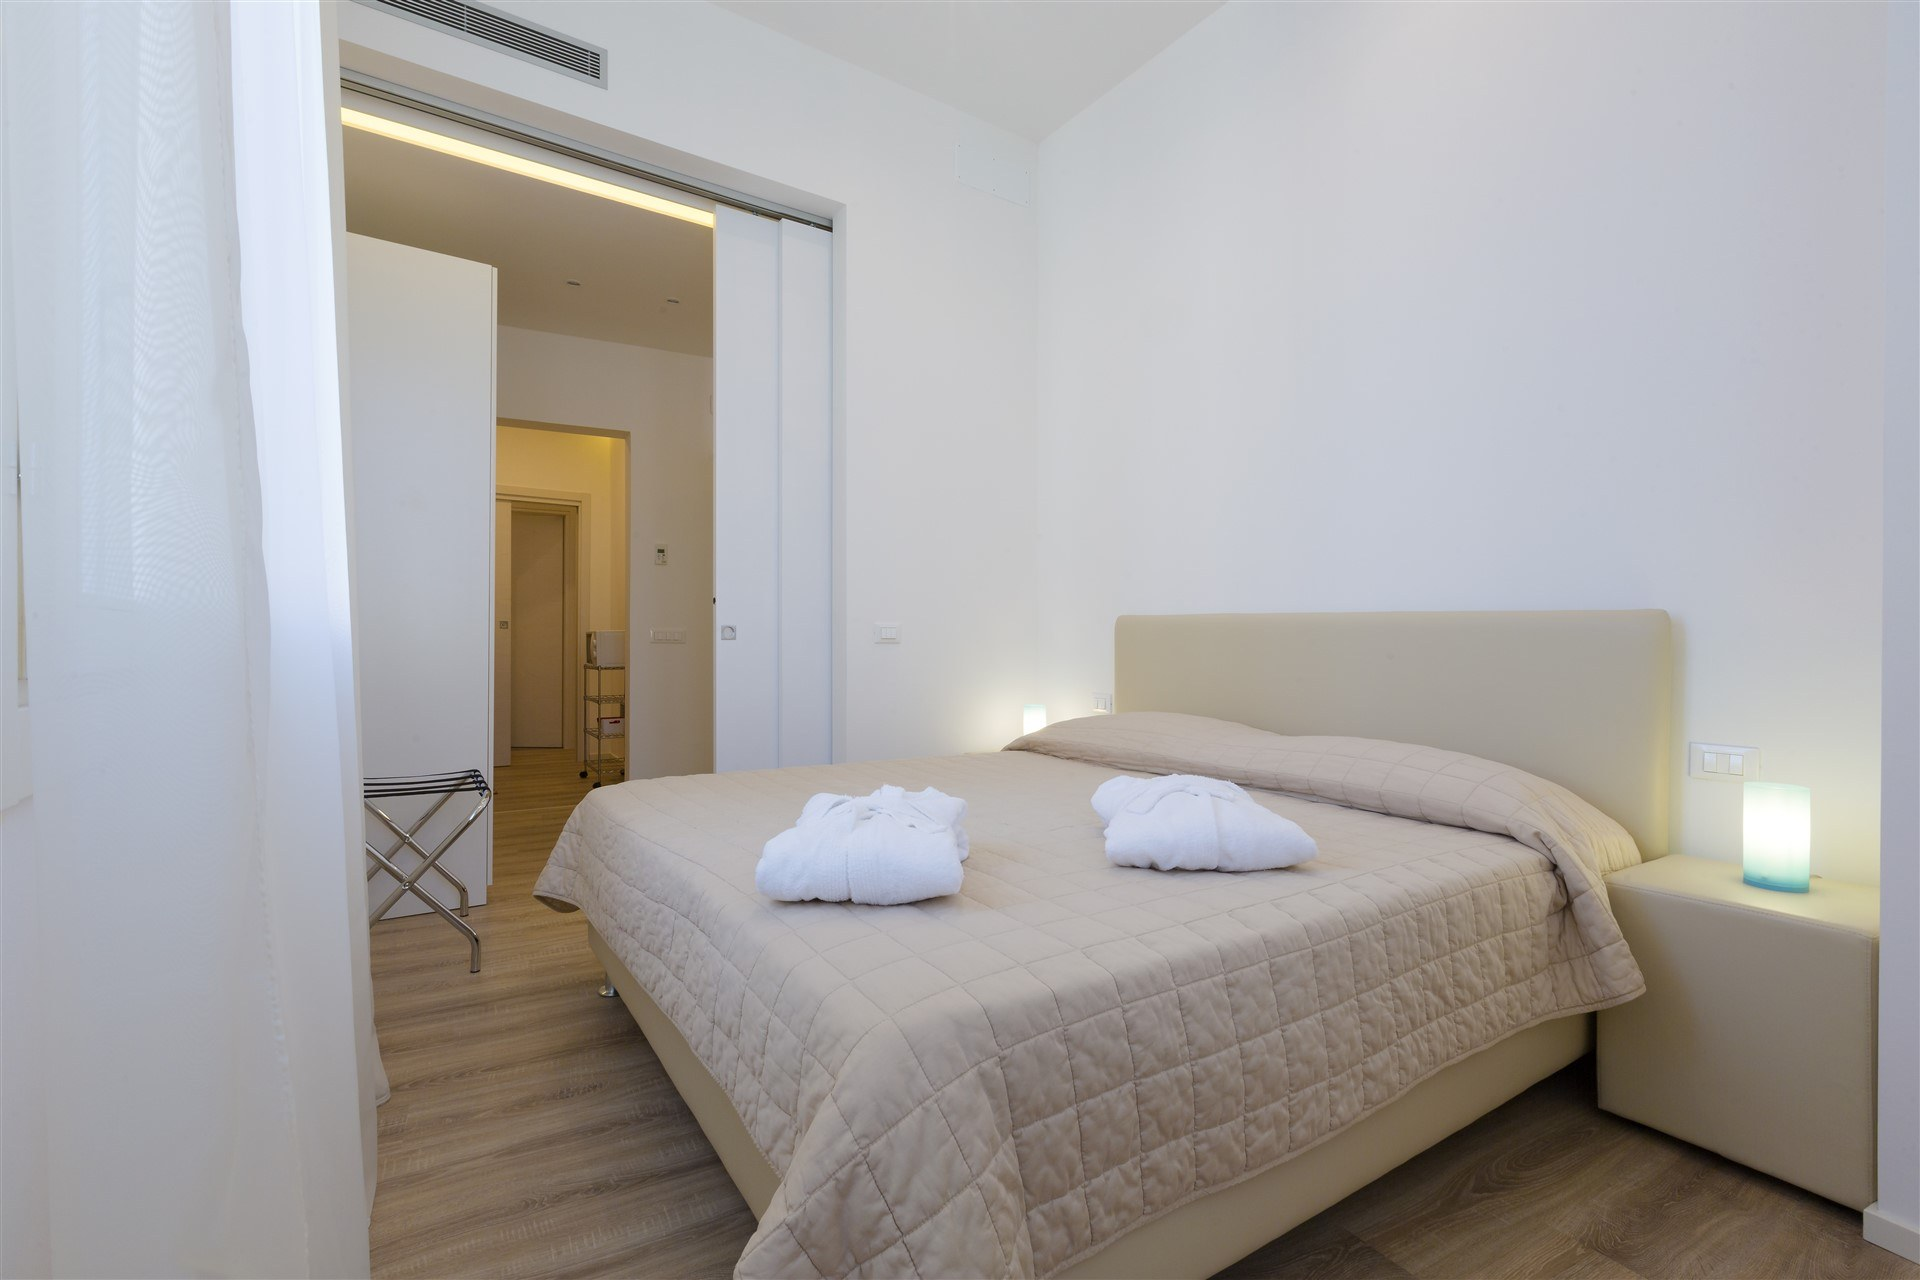 Grand Suite • Alloggi turistici Vicenza Centro